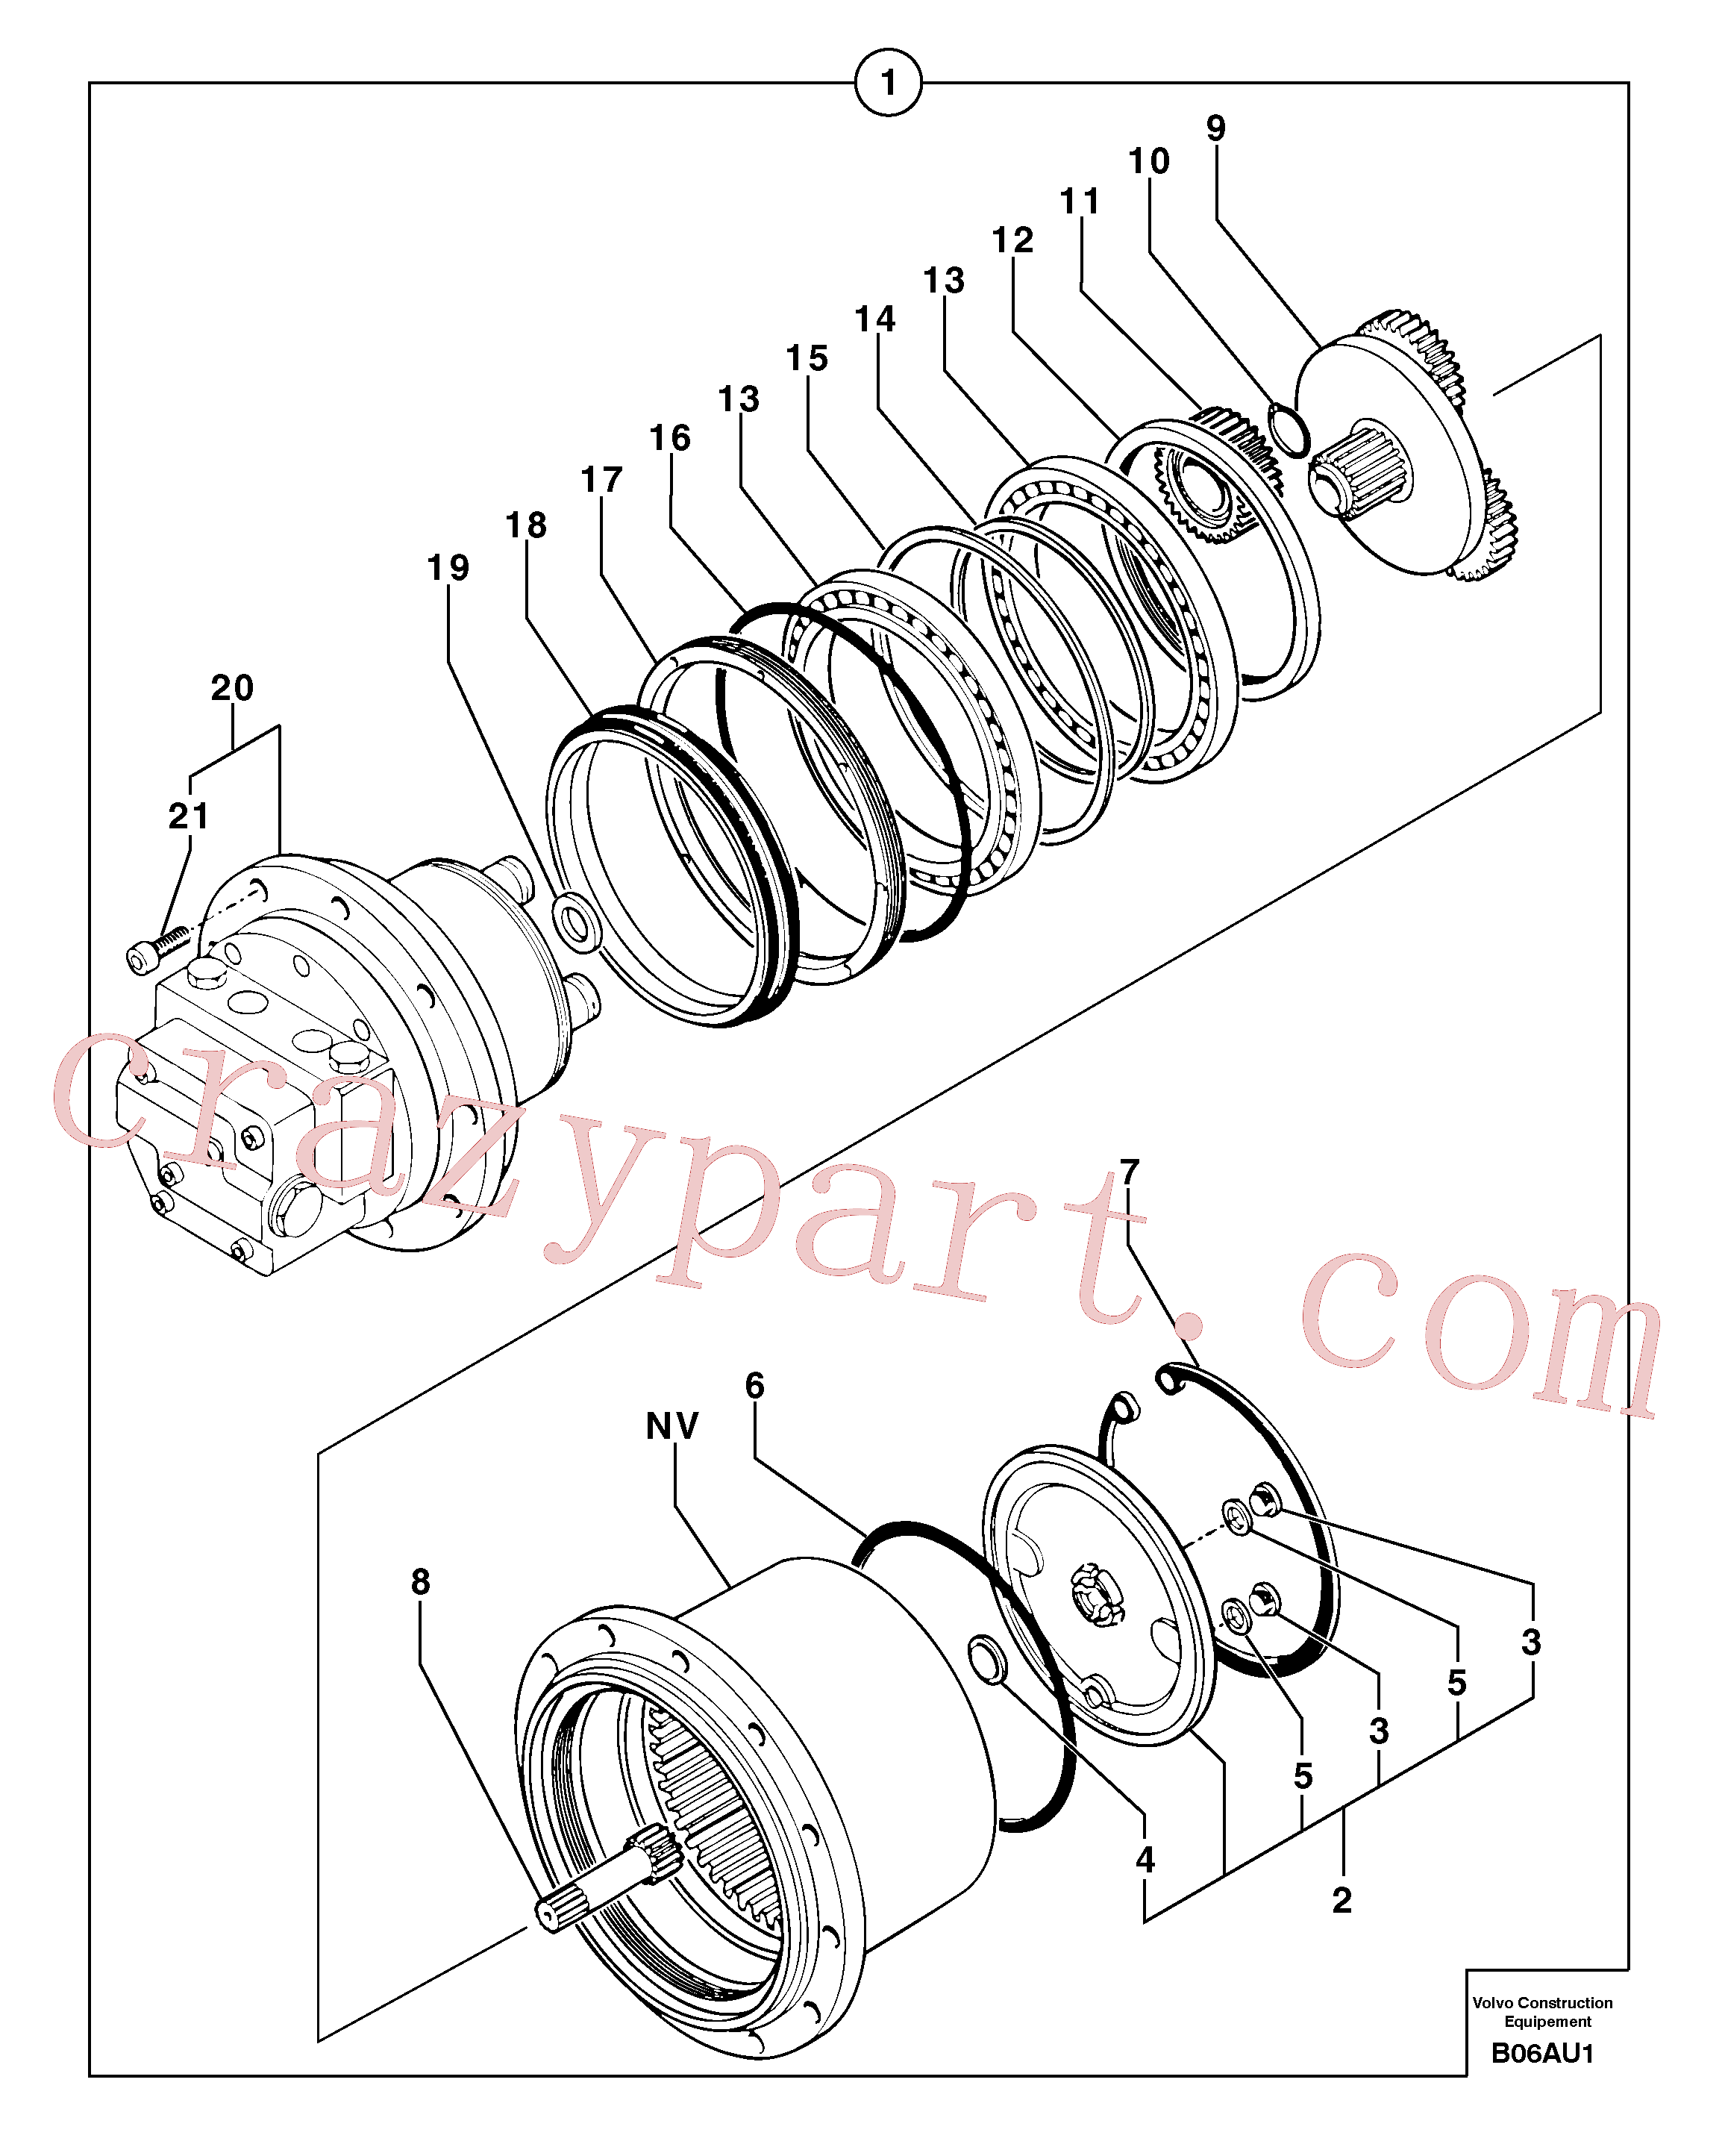 PJ7416961 for Volvo Travelling gear motor assy(B06AU1 assembly)